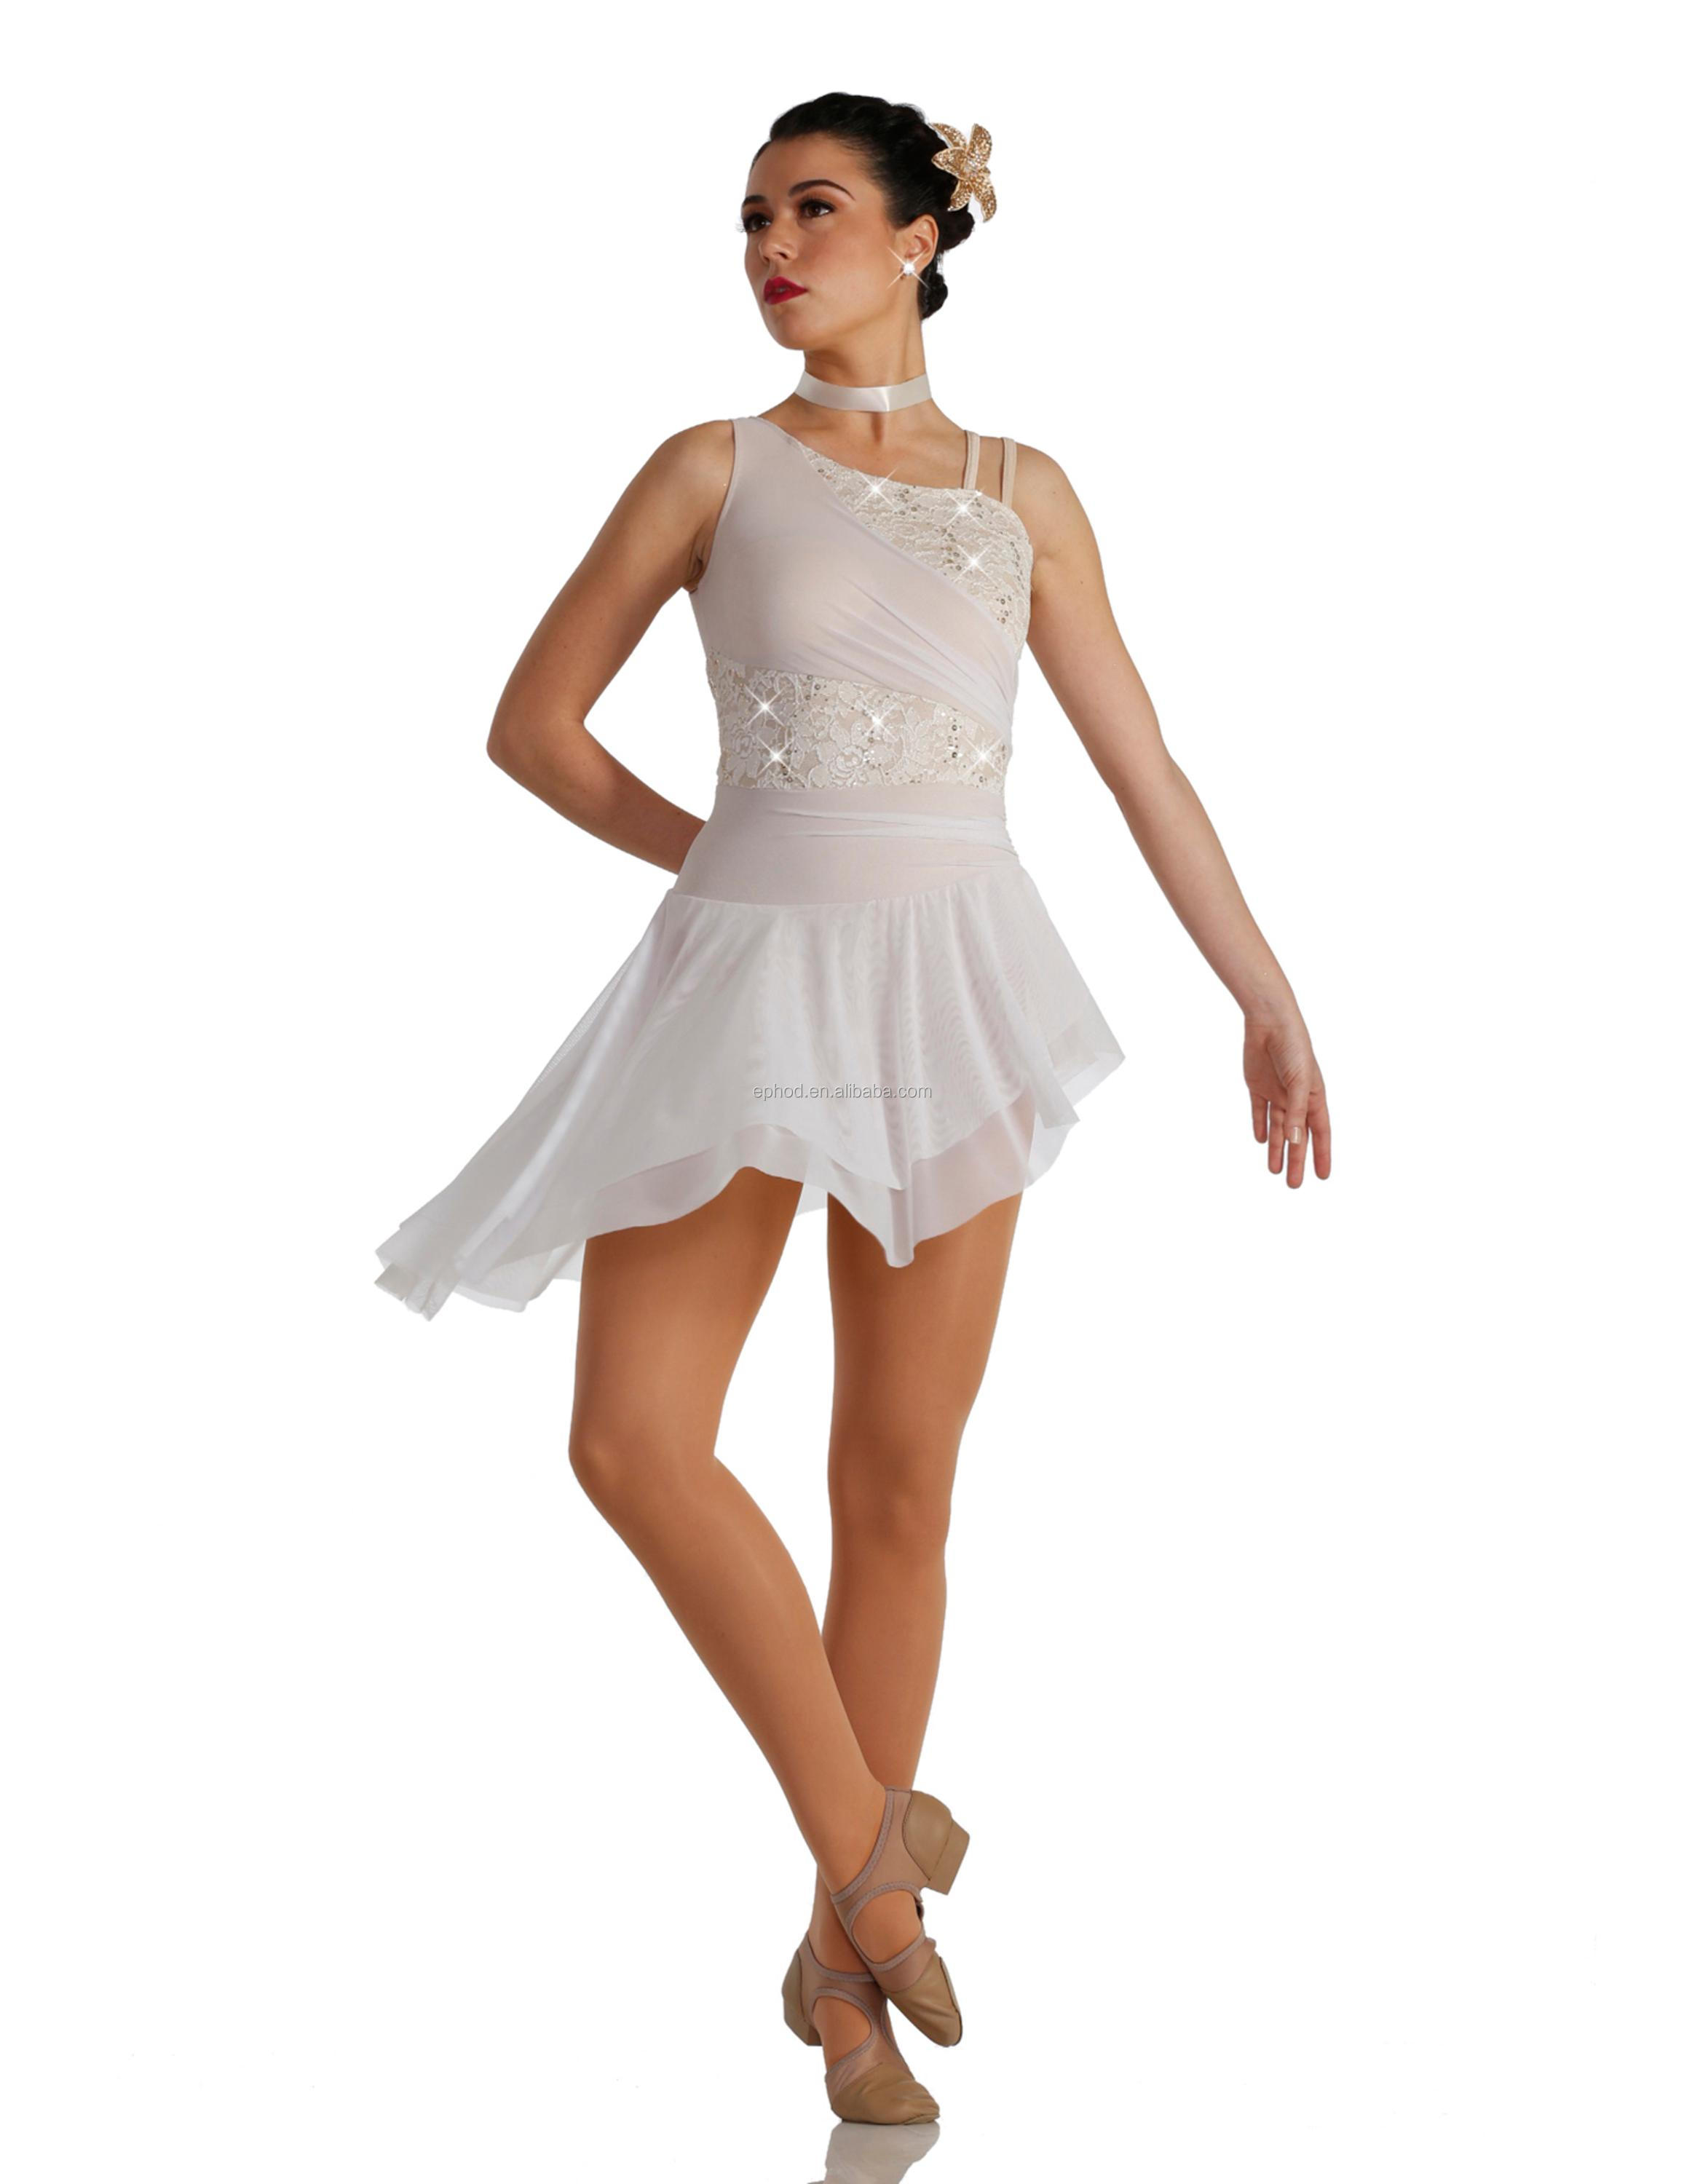 2018 nuovo lyrical costume/chiffon costumi/lyrical costume epl18-027